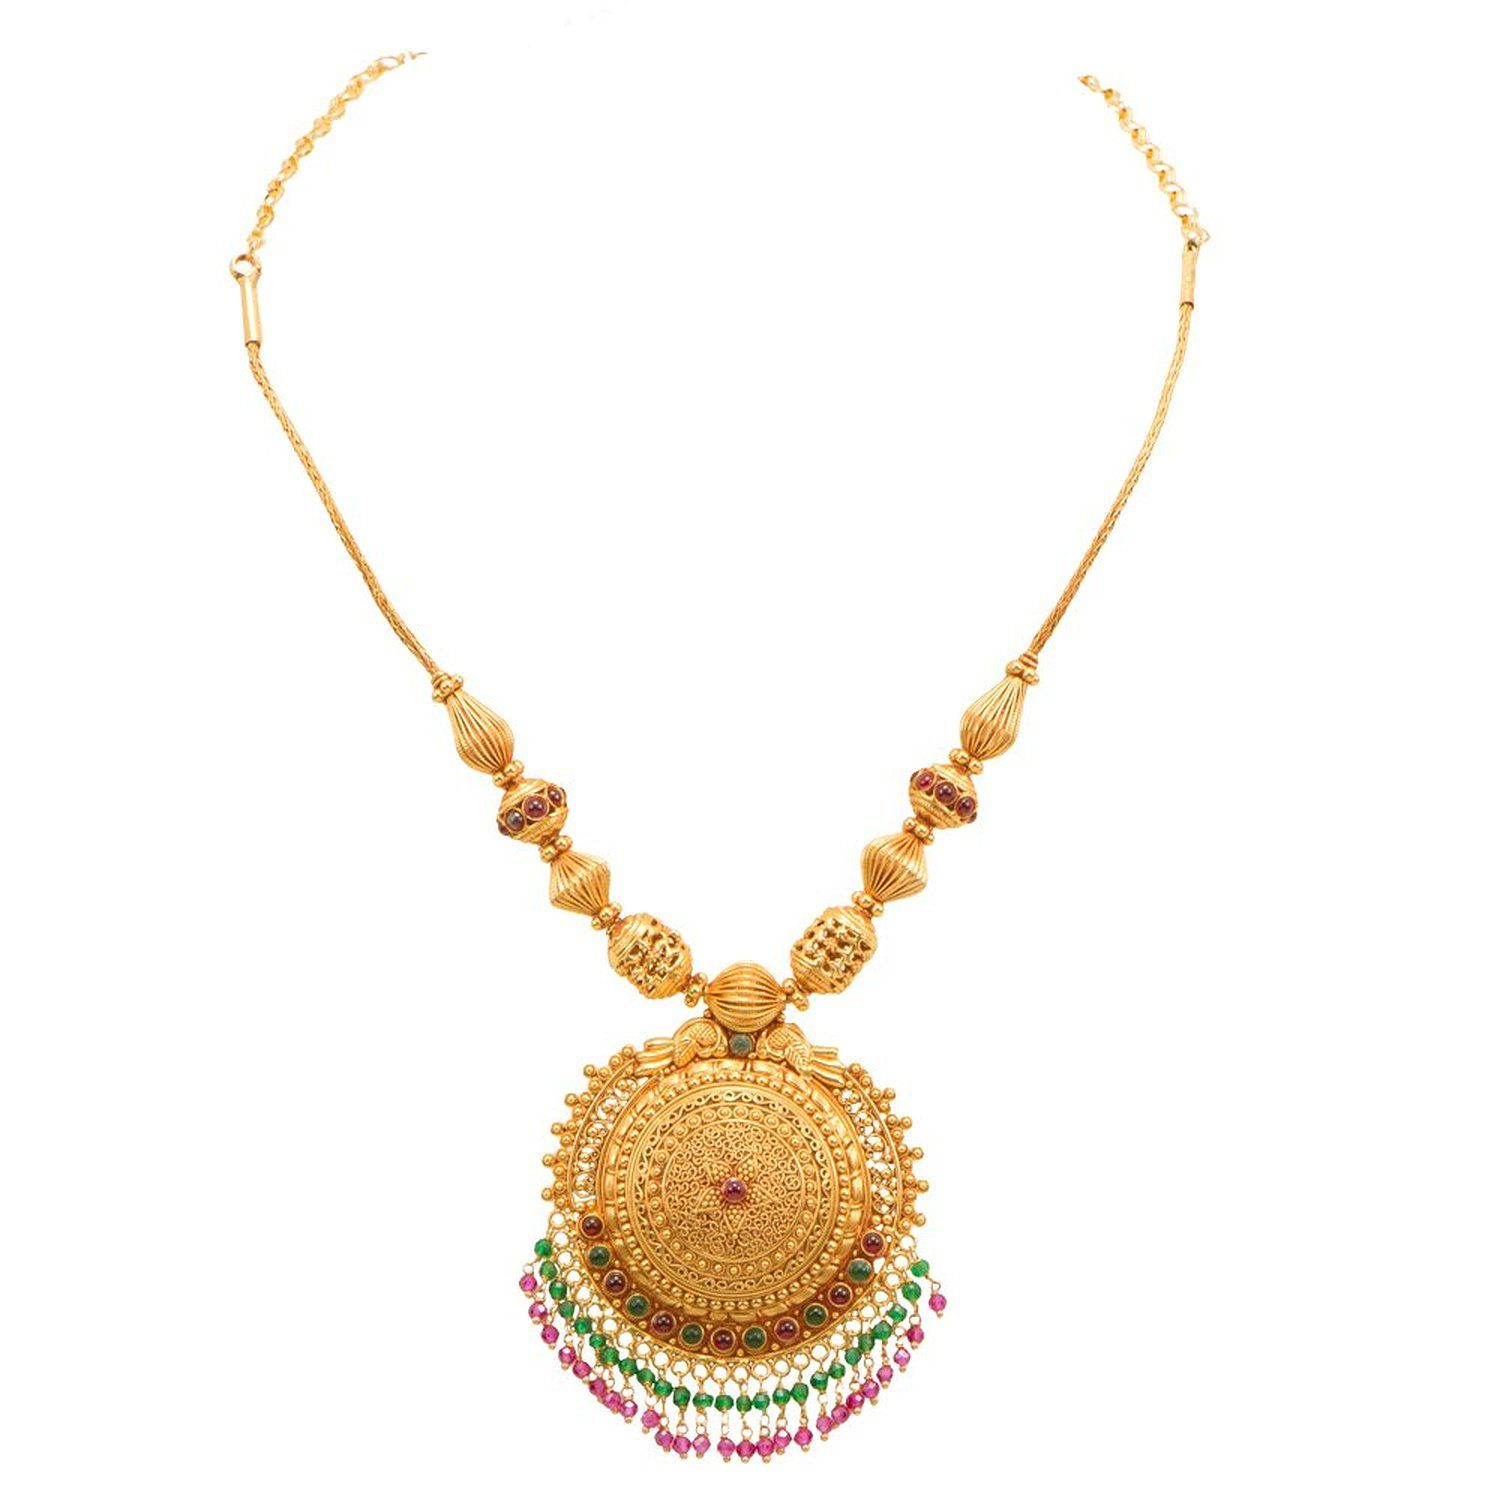 Buy Joyalukkas 22k Gold Necklace Online At Low Prices In